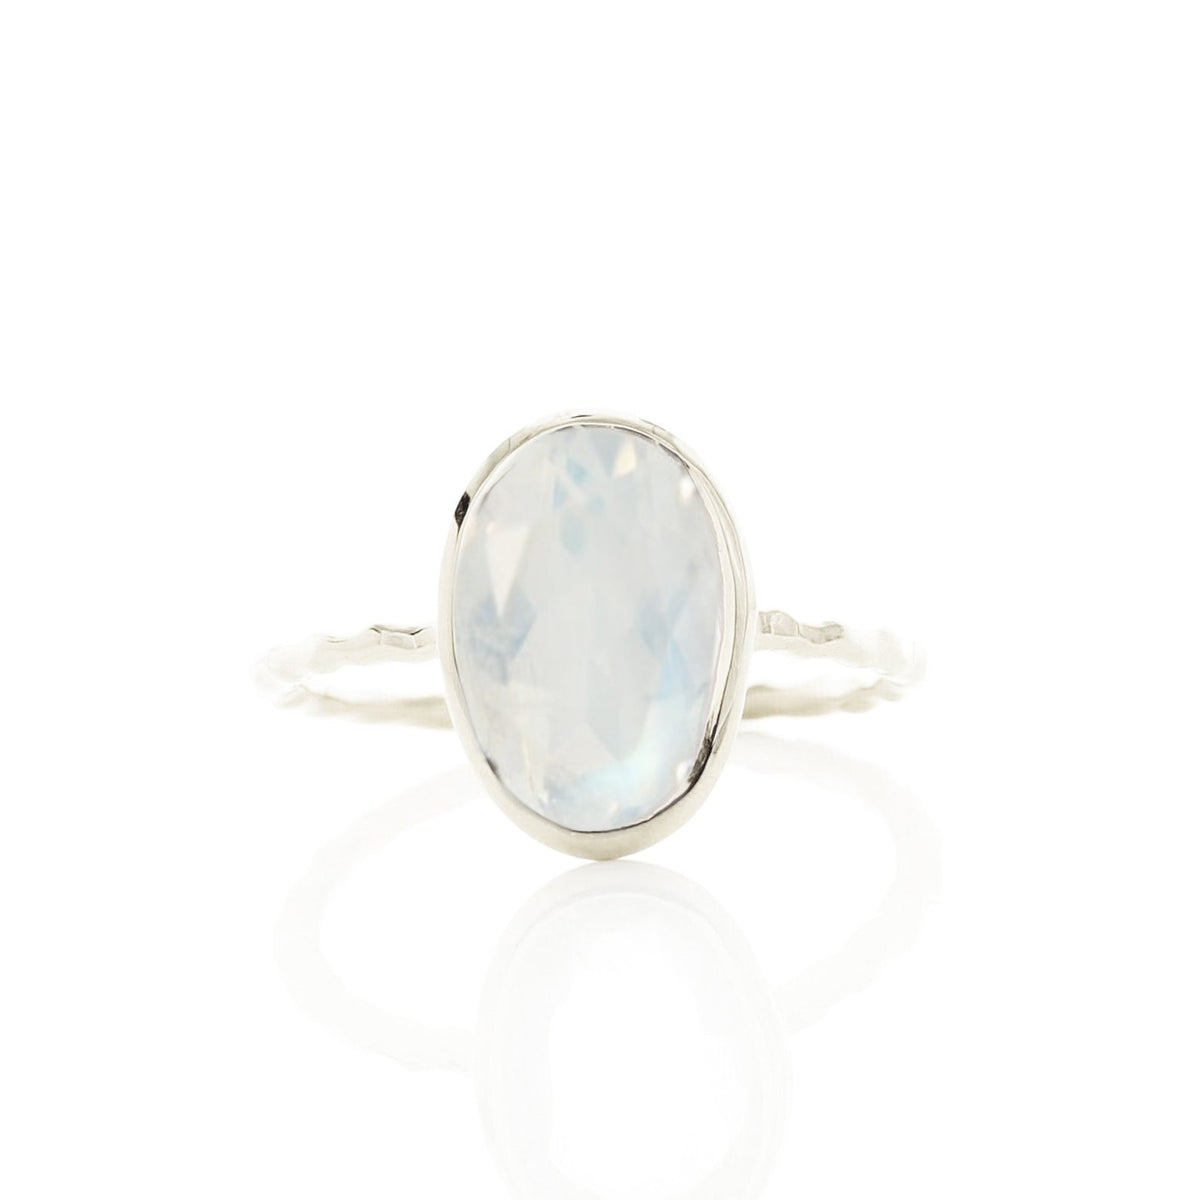 PROTECT OVAL RING - RAINBOW MOONSTONE & SILVER - SO PRETTY CARA COTTER